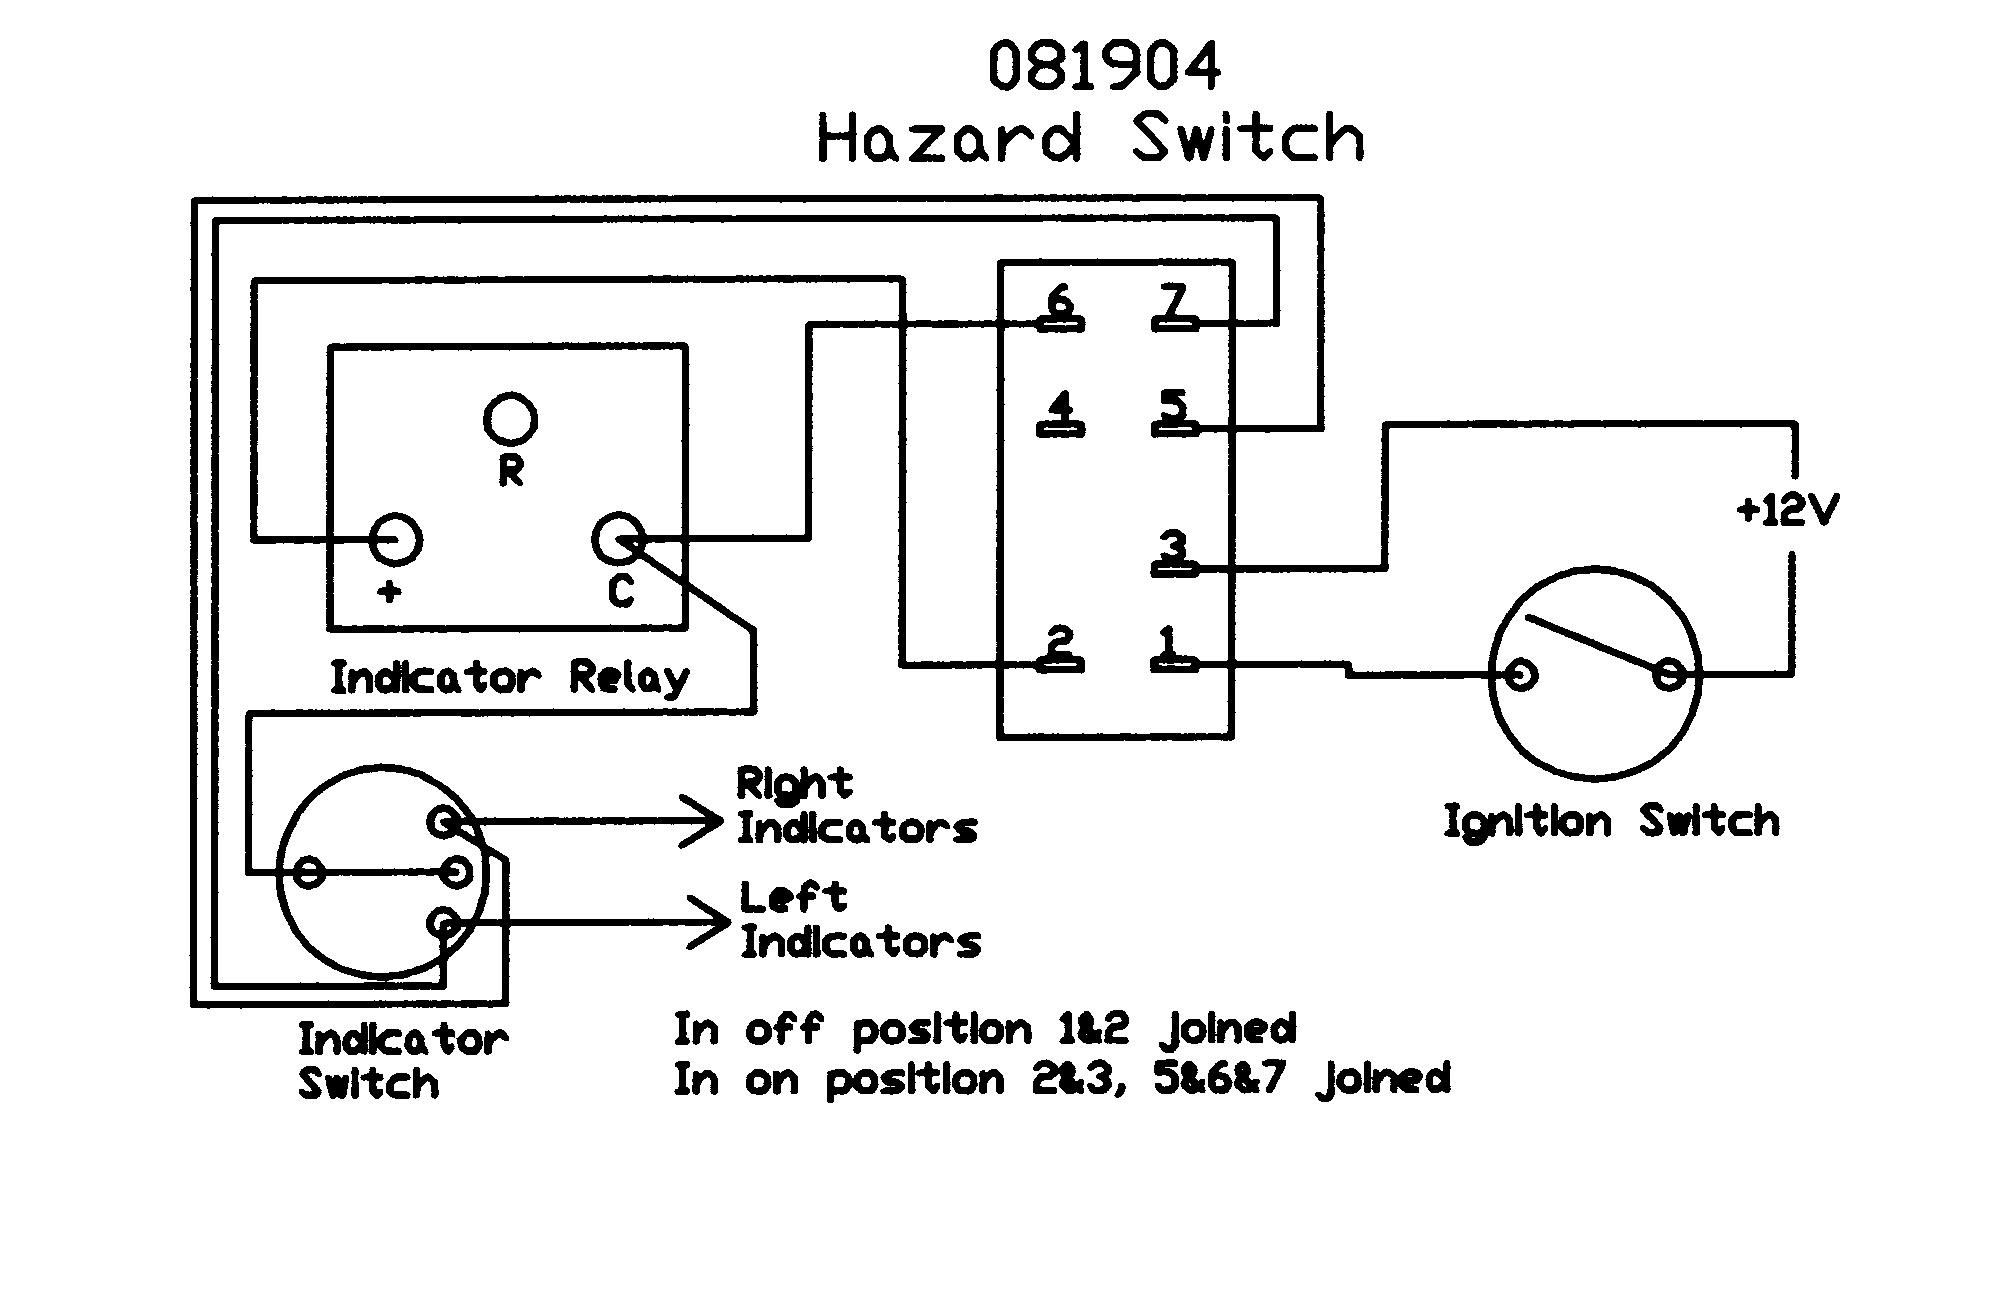 081904_wiring_diagram hazard switch rocker lucas indicator switch wiring diagram at pacquiaovsvargaslive.co